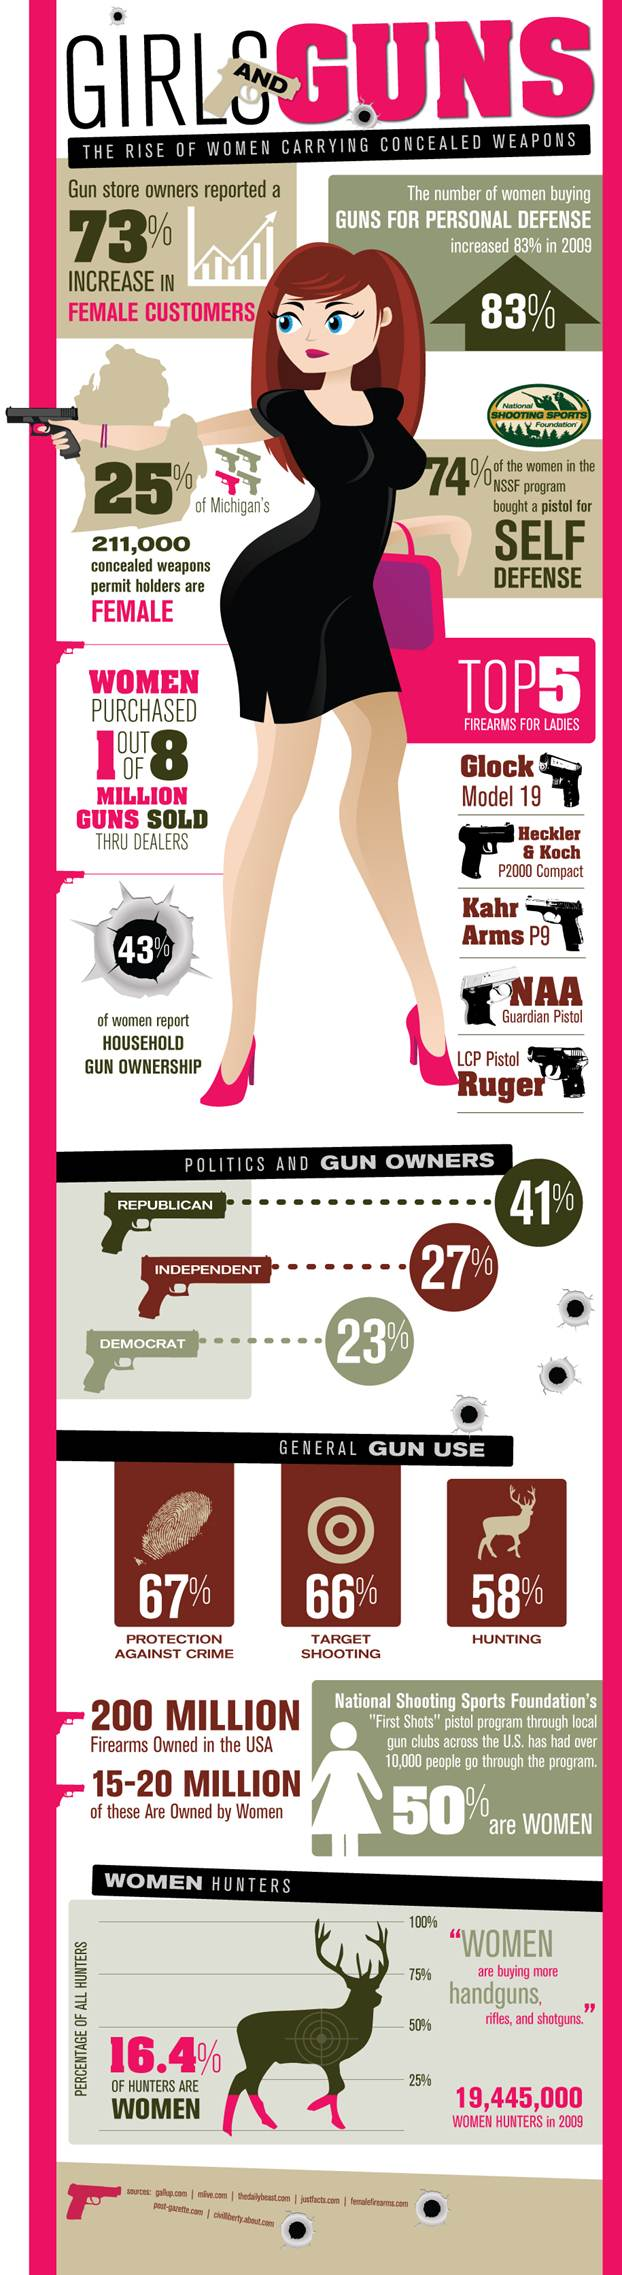 Girls-and-Guns_Women_Carrying_Concealed_Weapons